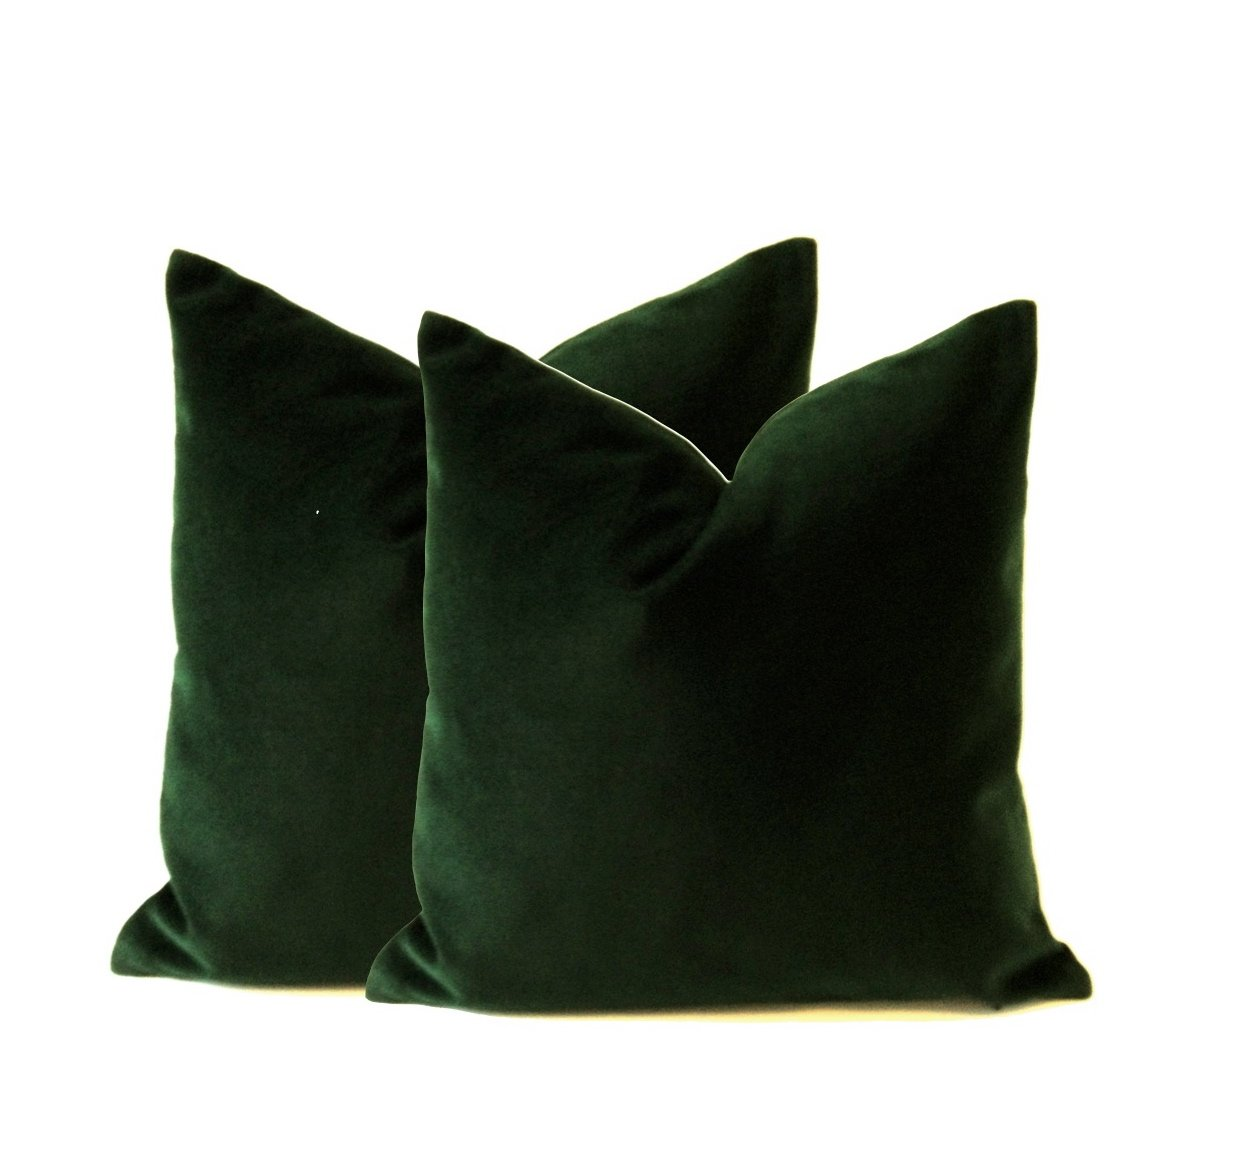 couch pillow olive uk info pillows for green throw concassage